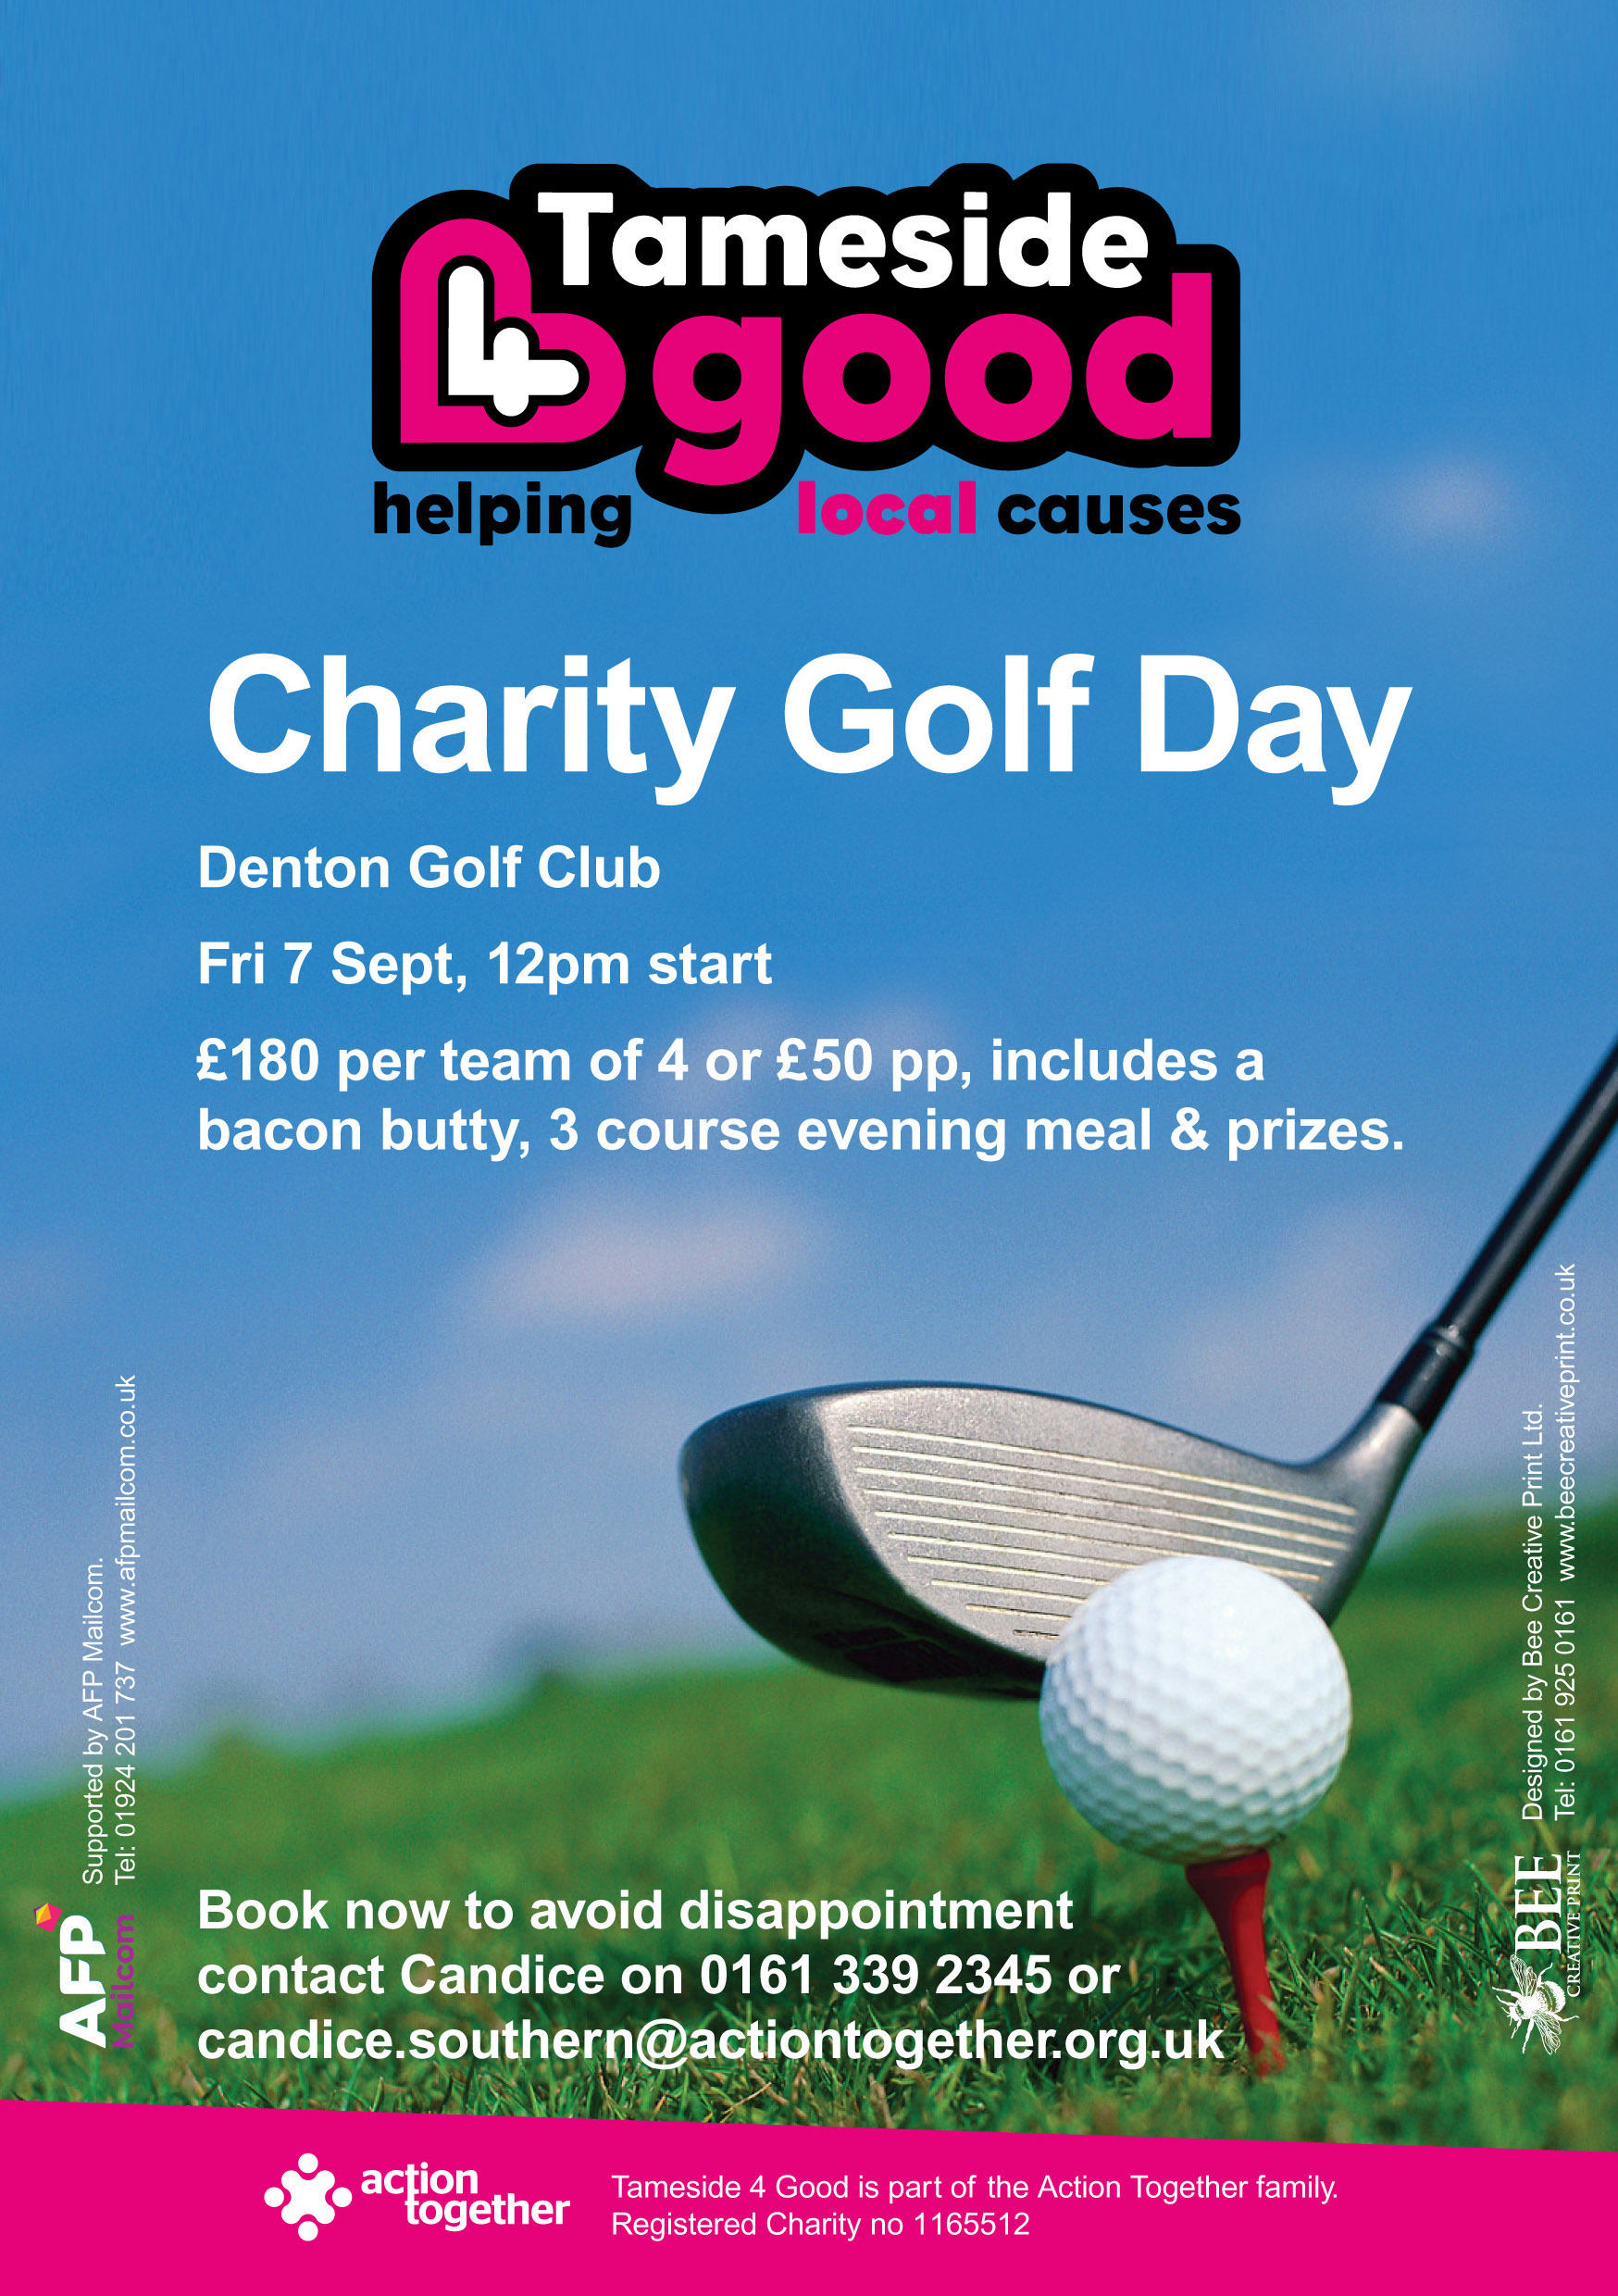 Charity Golf Day Event (Tameside 4 Good)